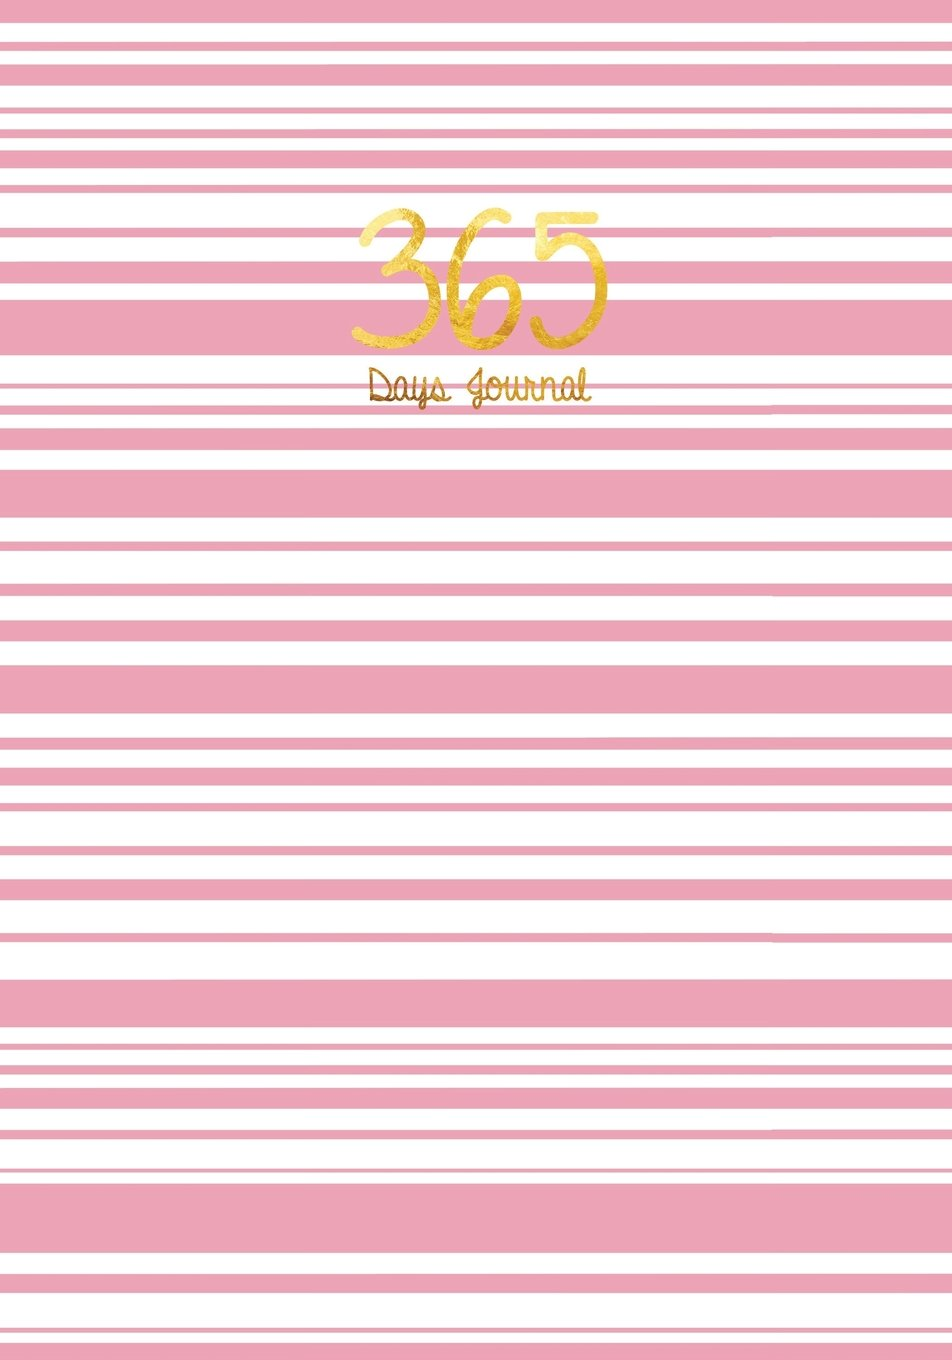 365 Days Journal, Journal Bubblegum Pink: Journal Stripes, Luxurious 365 Days Notebook, Blank Pages, 365 Pages, Planner, Sketchbook, Diary, School Supplies, Office Supplies pdf epub